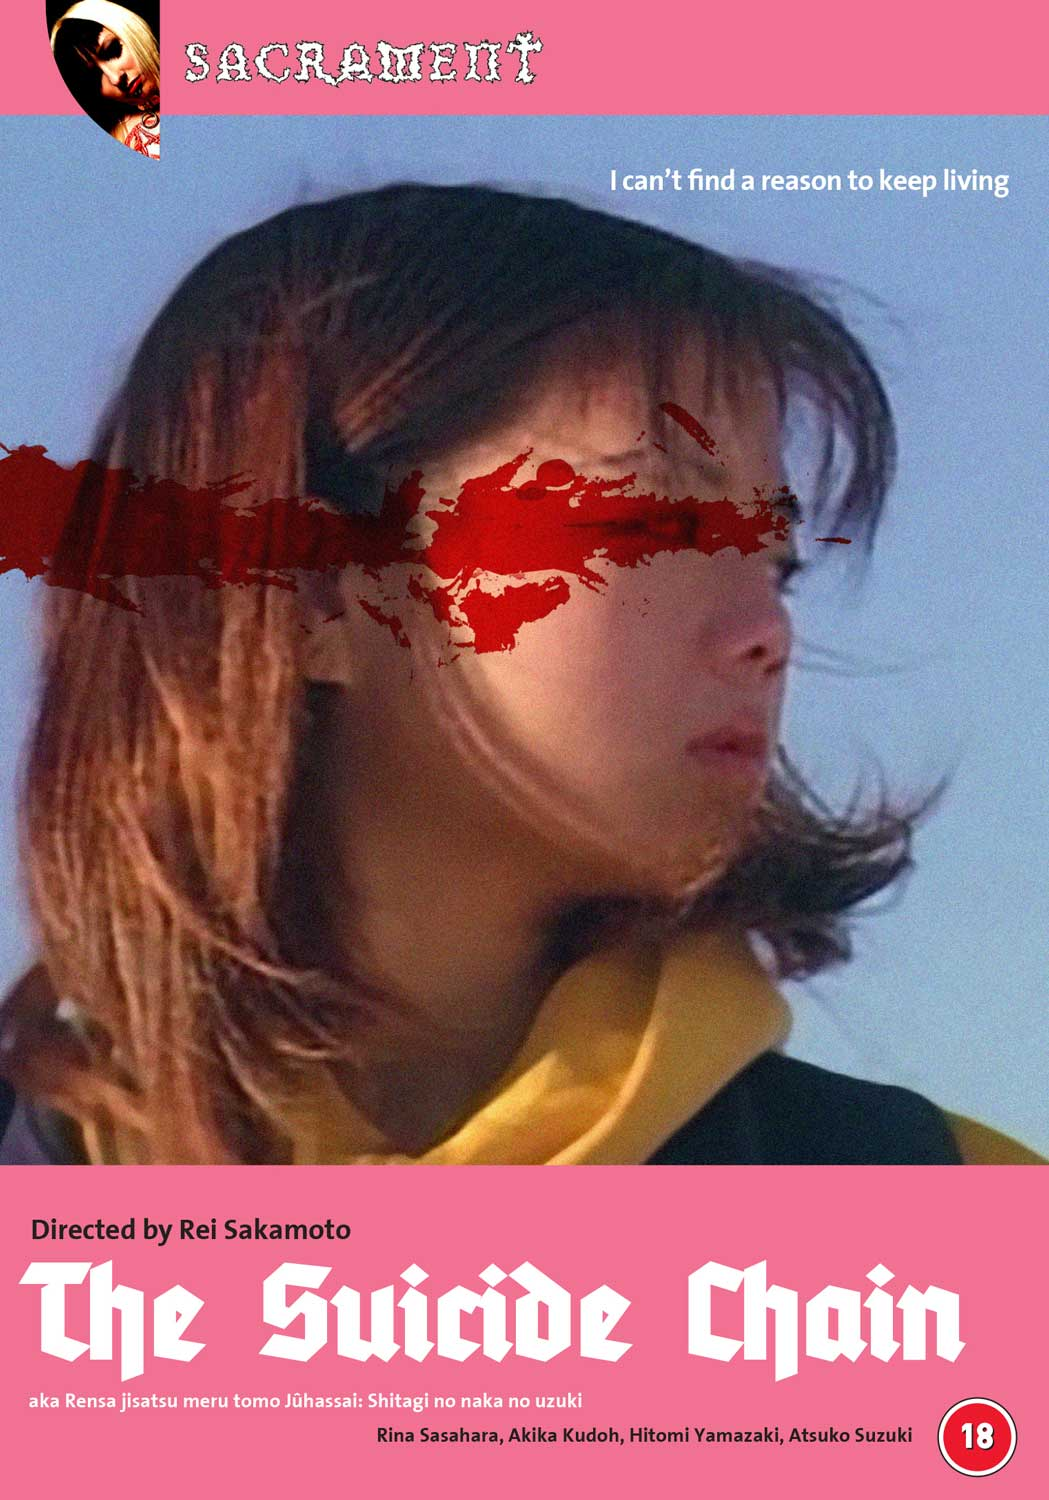 Stream pinku drama from the Sacarament imprint of Redemption Films